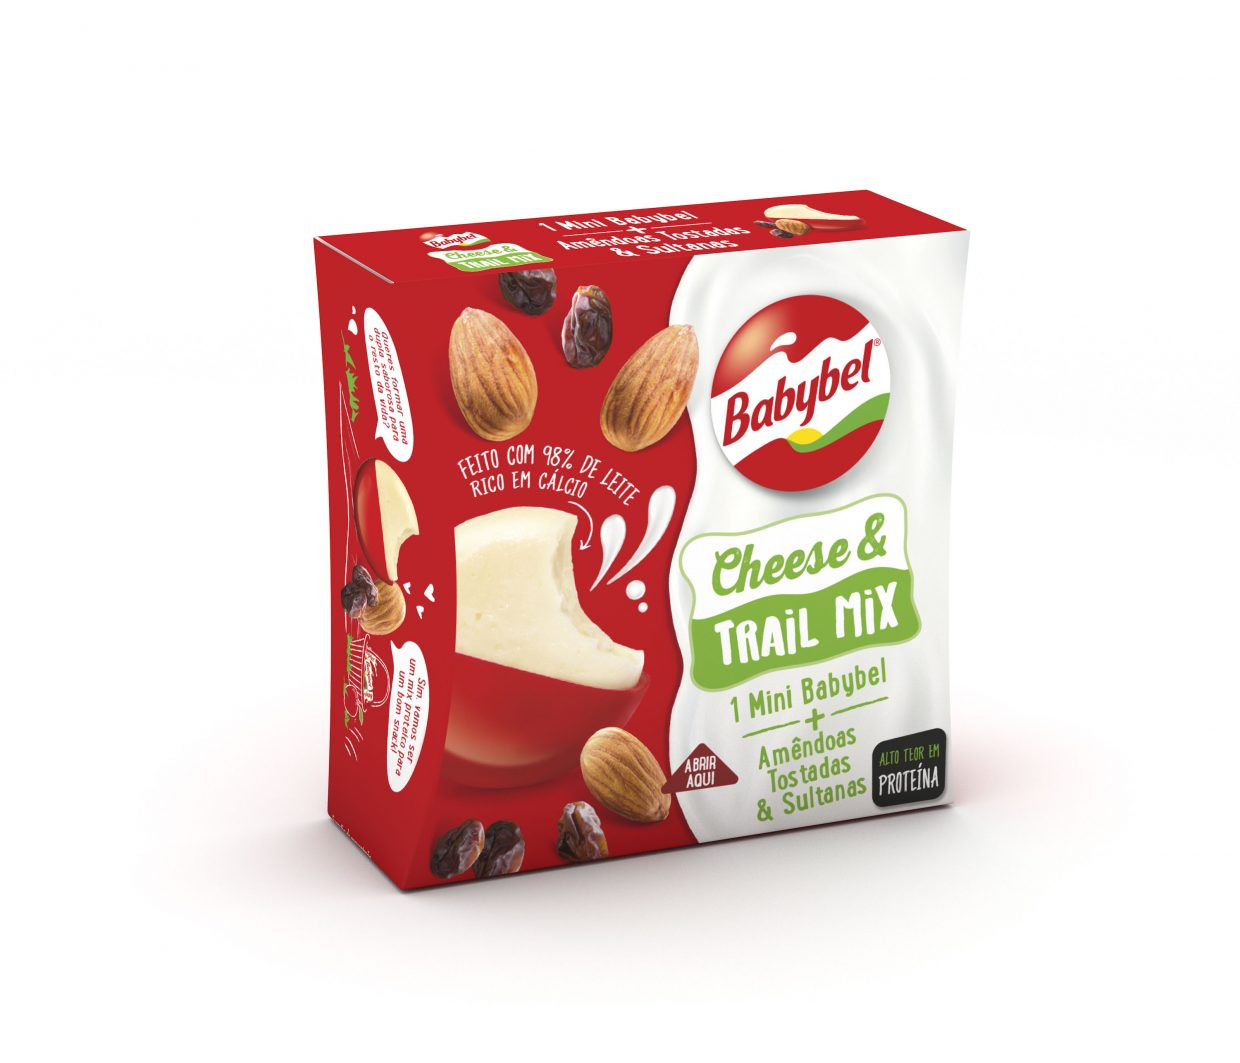 Babybel Cheese & Trail Mix, o novo snack proteico